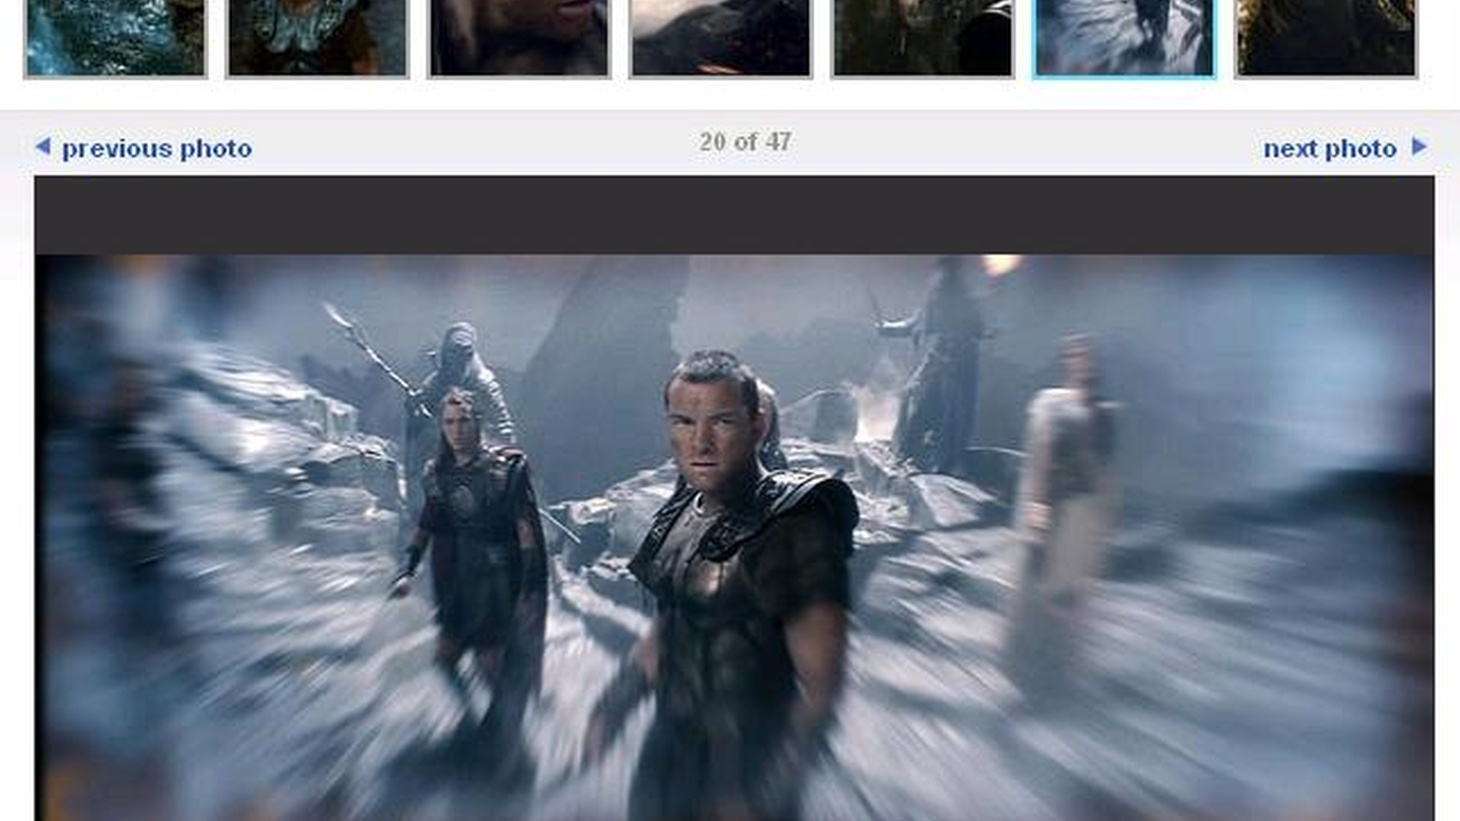 A few more 3-D spectacles like Clash of the Titans and audiences will be clamoring for 2-D...